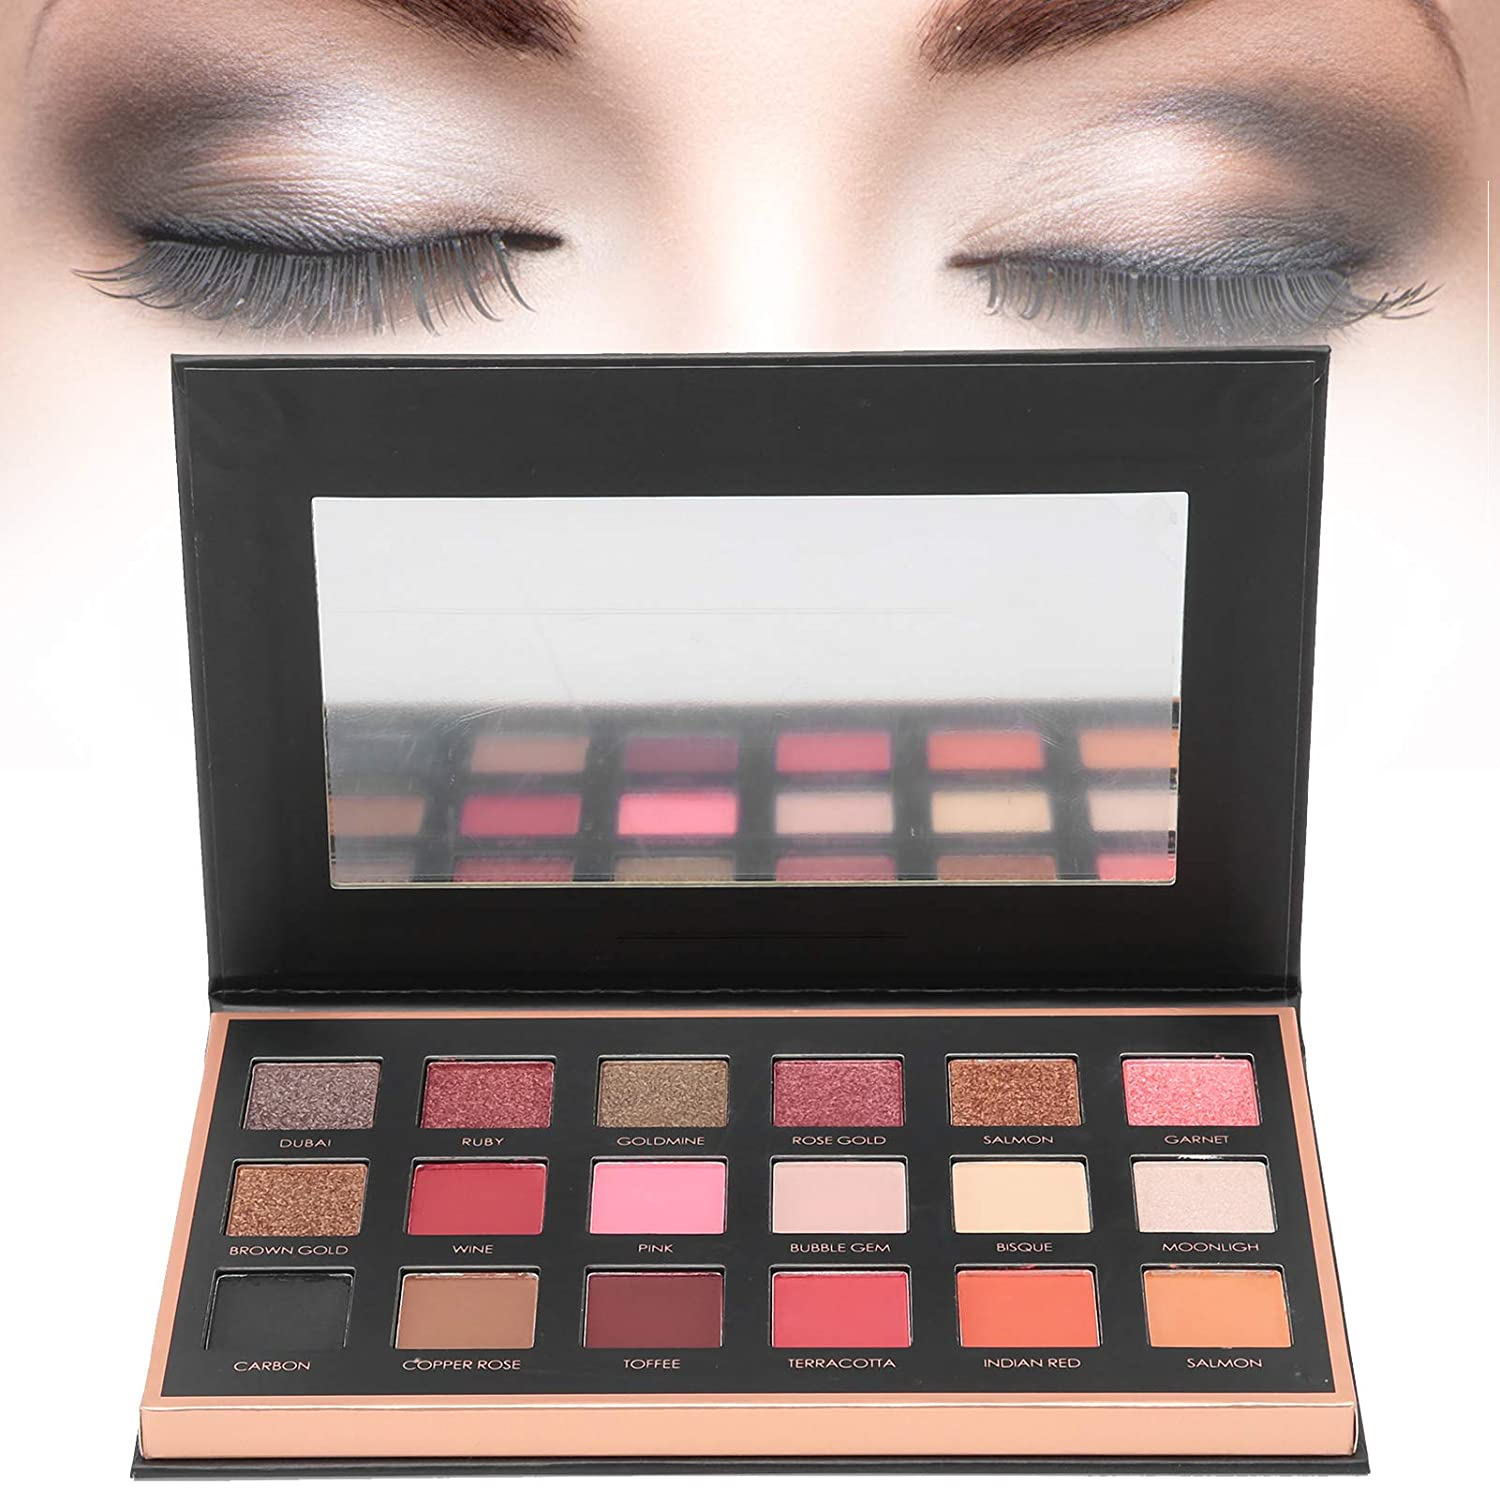 Eyeshadow Palette Makeup, Matte Shimmer 18 Colors, Makeup Naked Eyeshadow Palette Highly Pigmented Professional Nudes Warm Natural Bronze Neutral Smoky Cosmetic Eye Shadows(1A#)